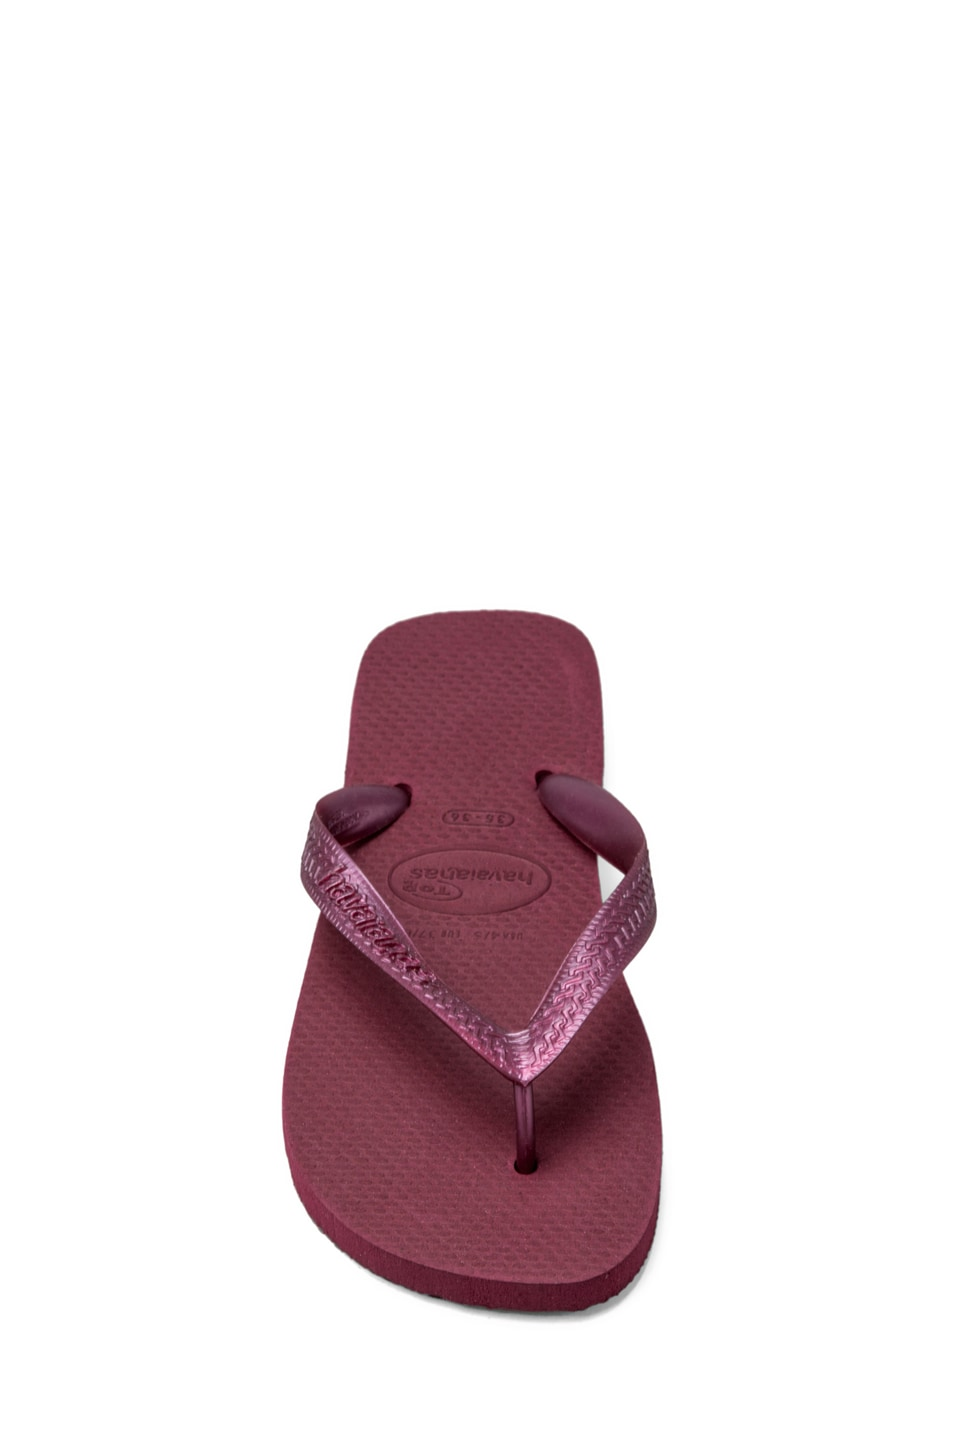 Havaianas Top Metallic Flip Flop in Bordeaux